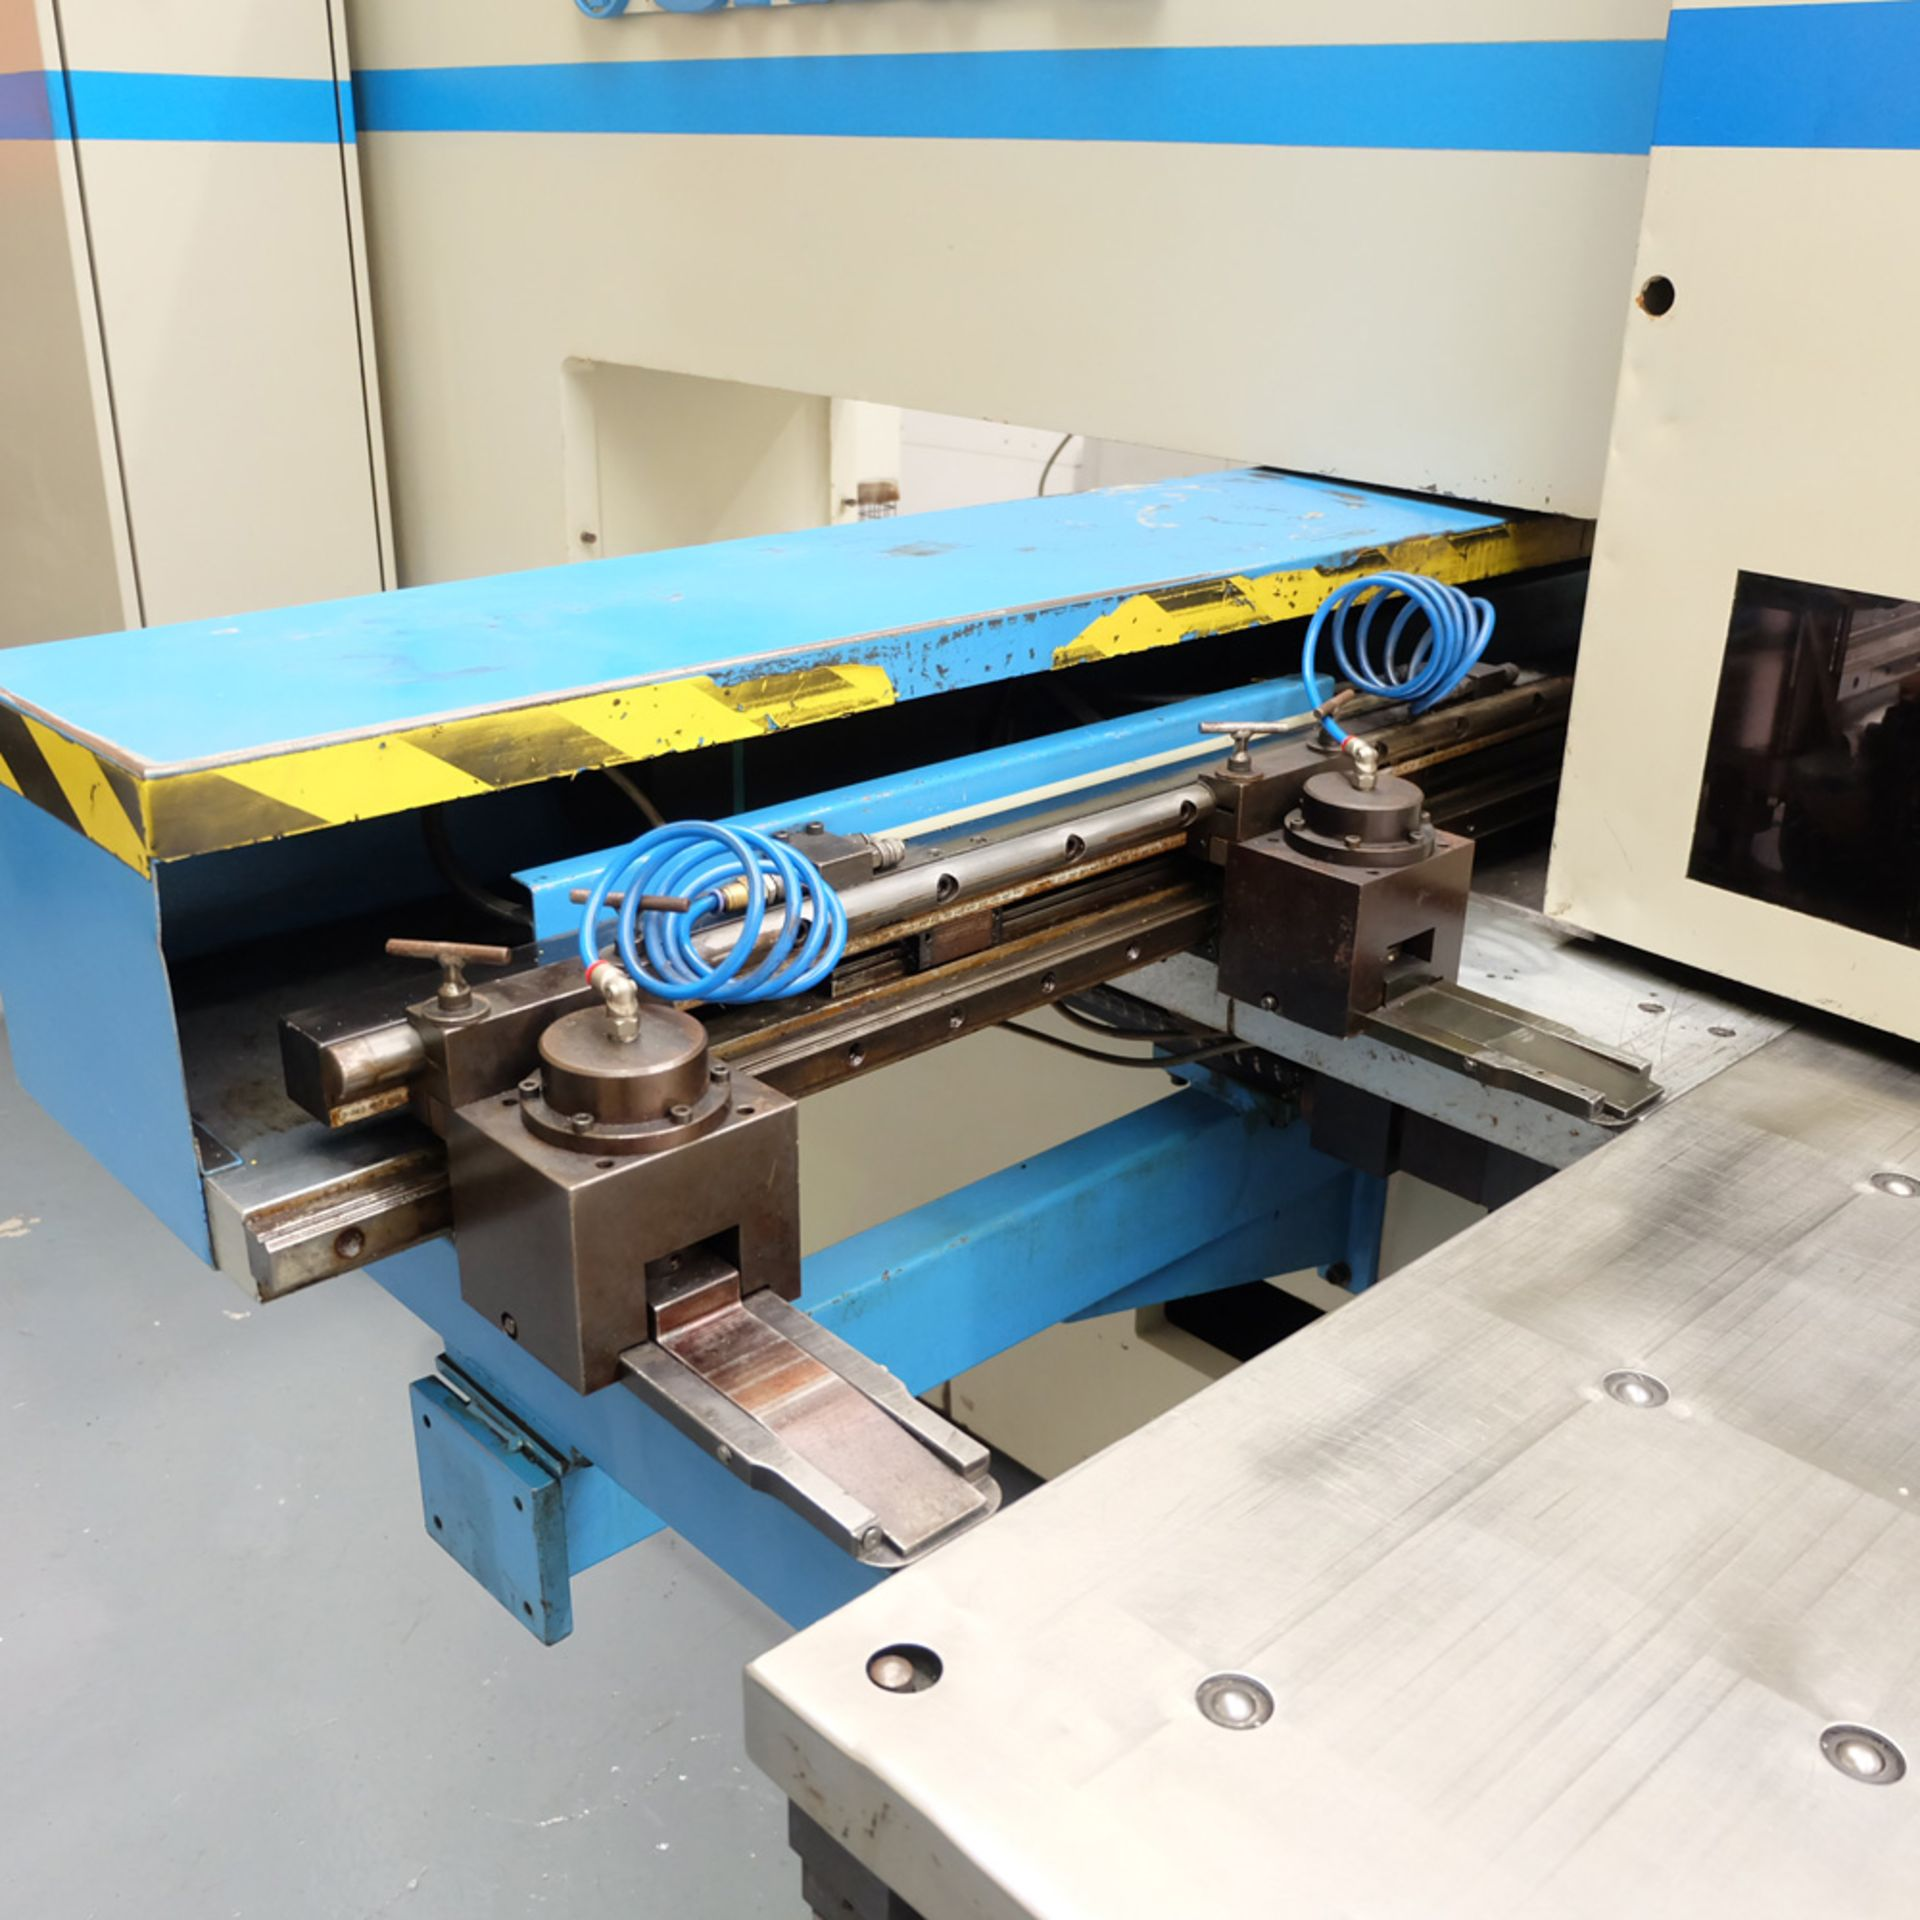 LVD SHAPE Model Delta 1000 Thick CNC Punching Machine.With Fanuc MNC 4000 Control.Capacity: 20 Tons. - Image 7 of 19